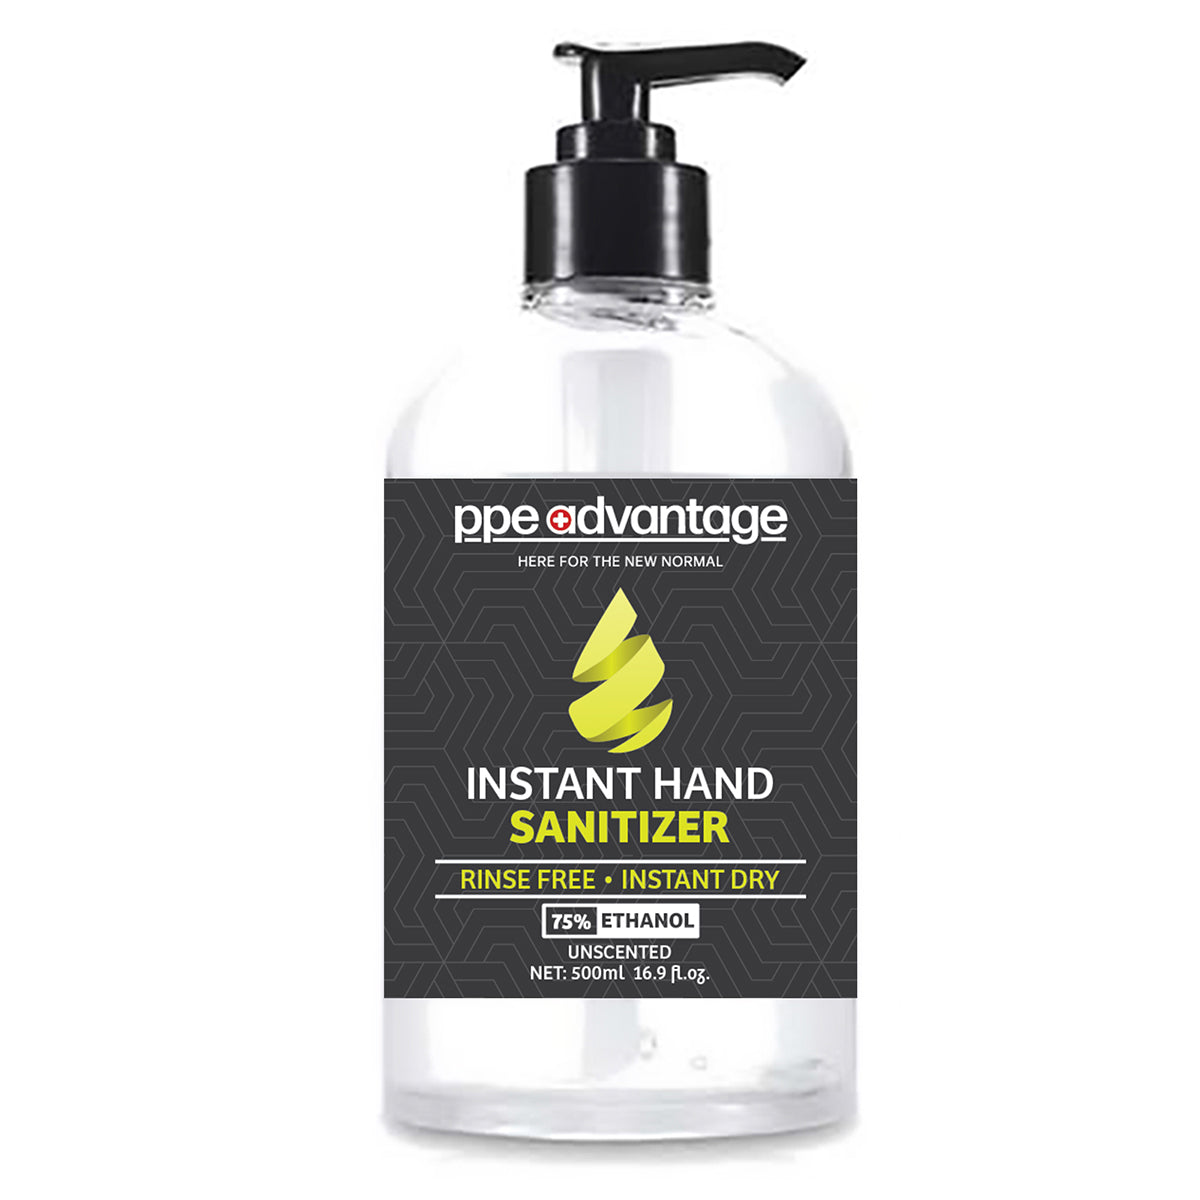 3022 PPE Advantage Instant Hand Sanitizer (17oz) - PPEA Branded Label | PPE Advantate powered by dS Product Hunters